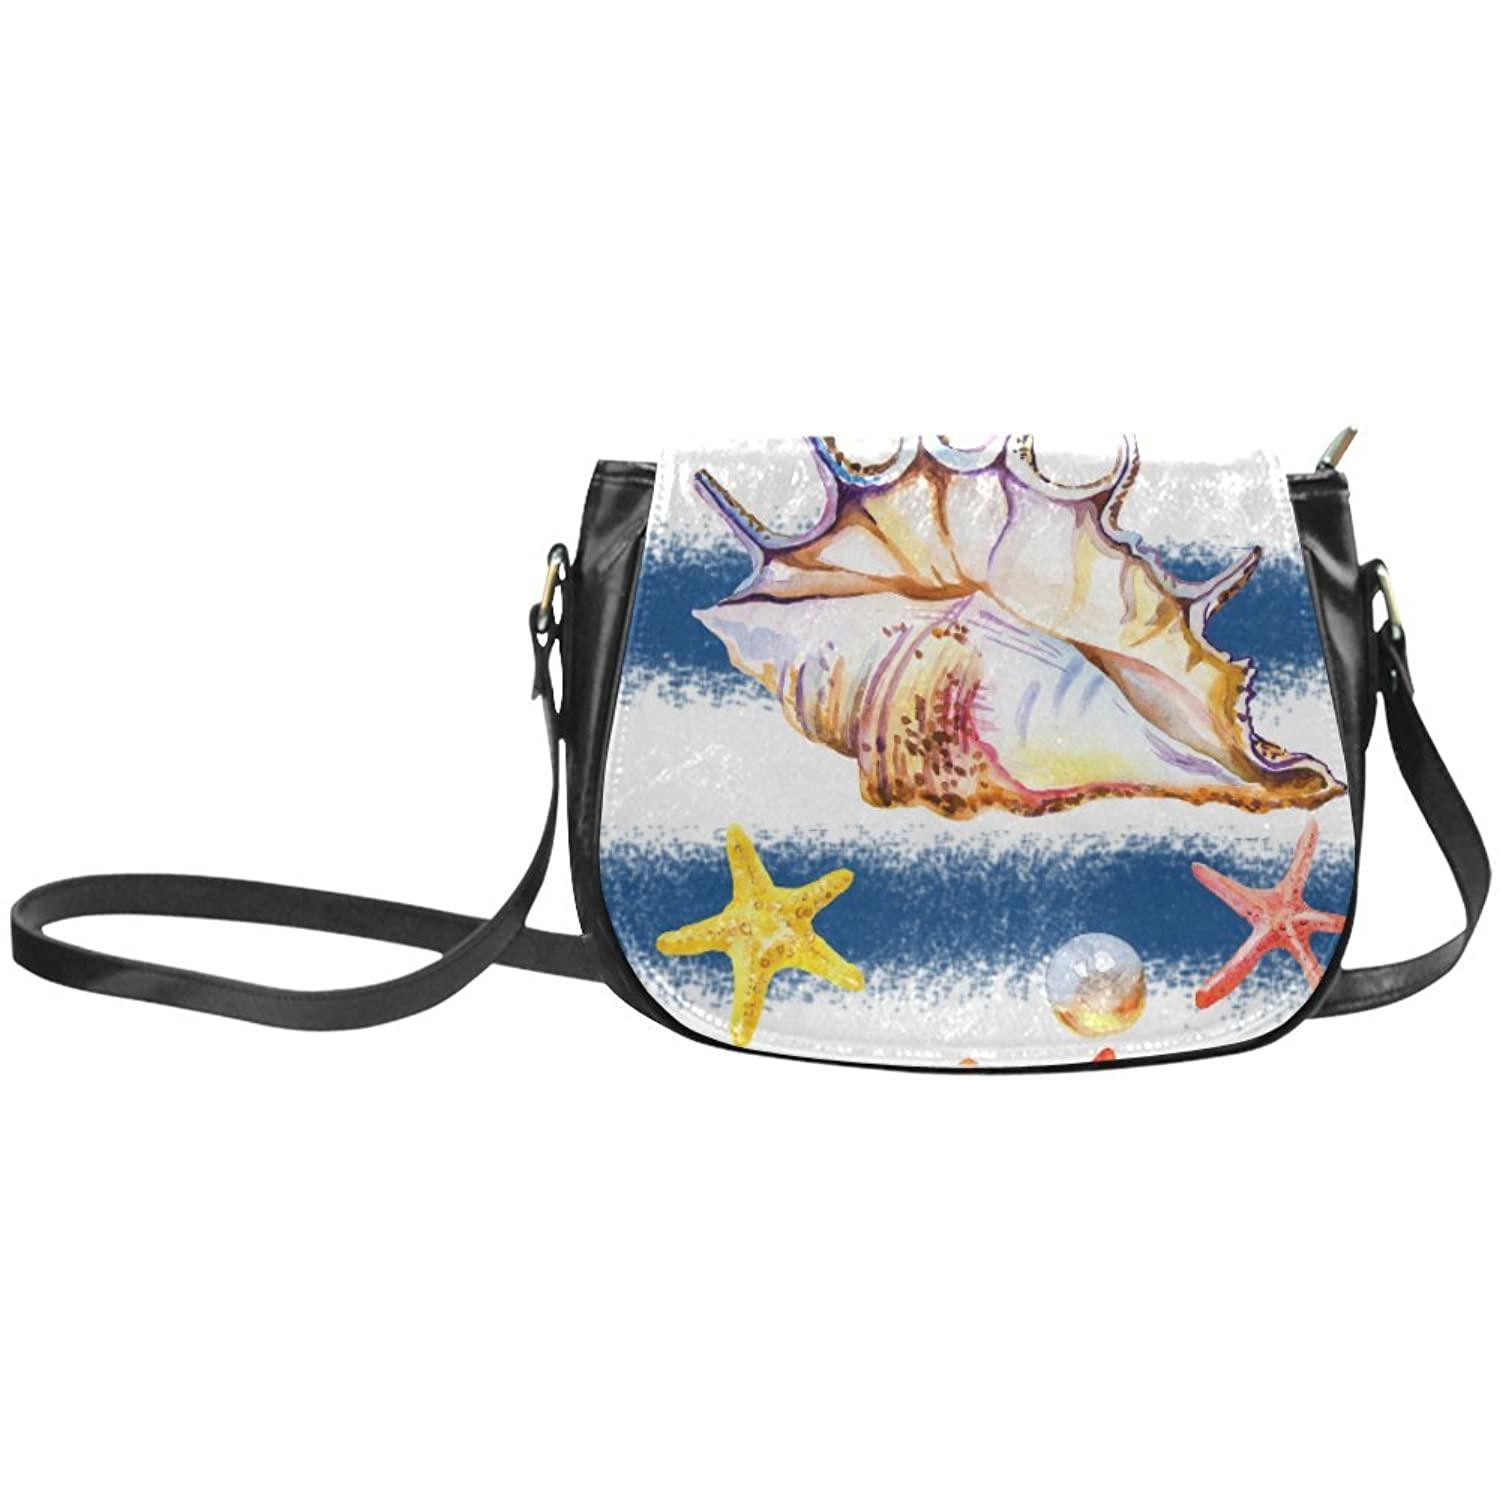 InterestPrint Custom Seashell Starfish Saddle Bag/Shoulder Bag for Women Girls